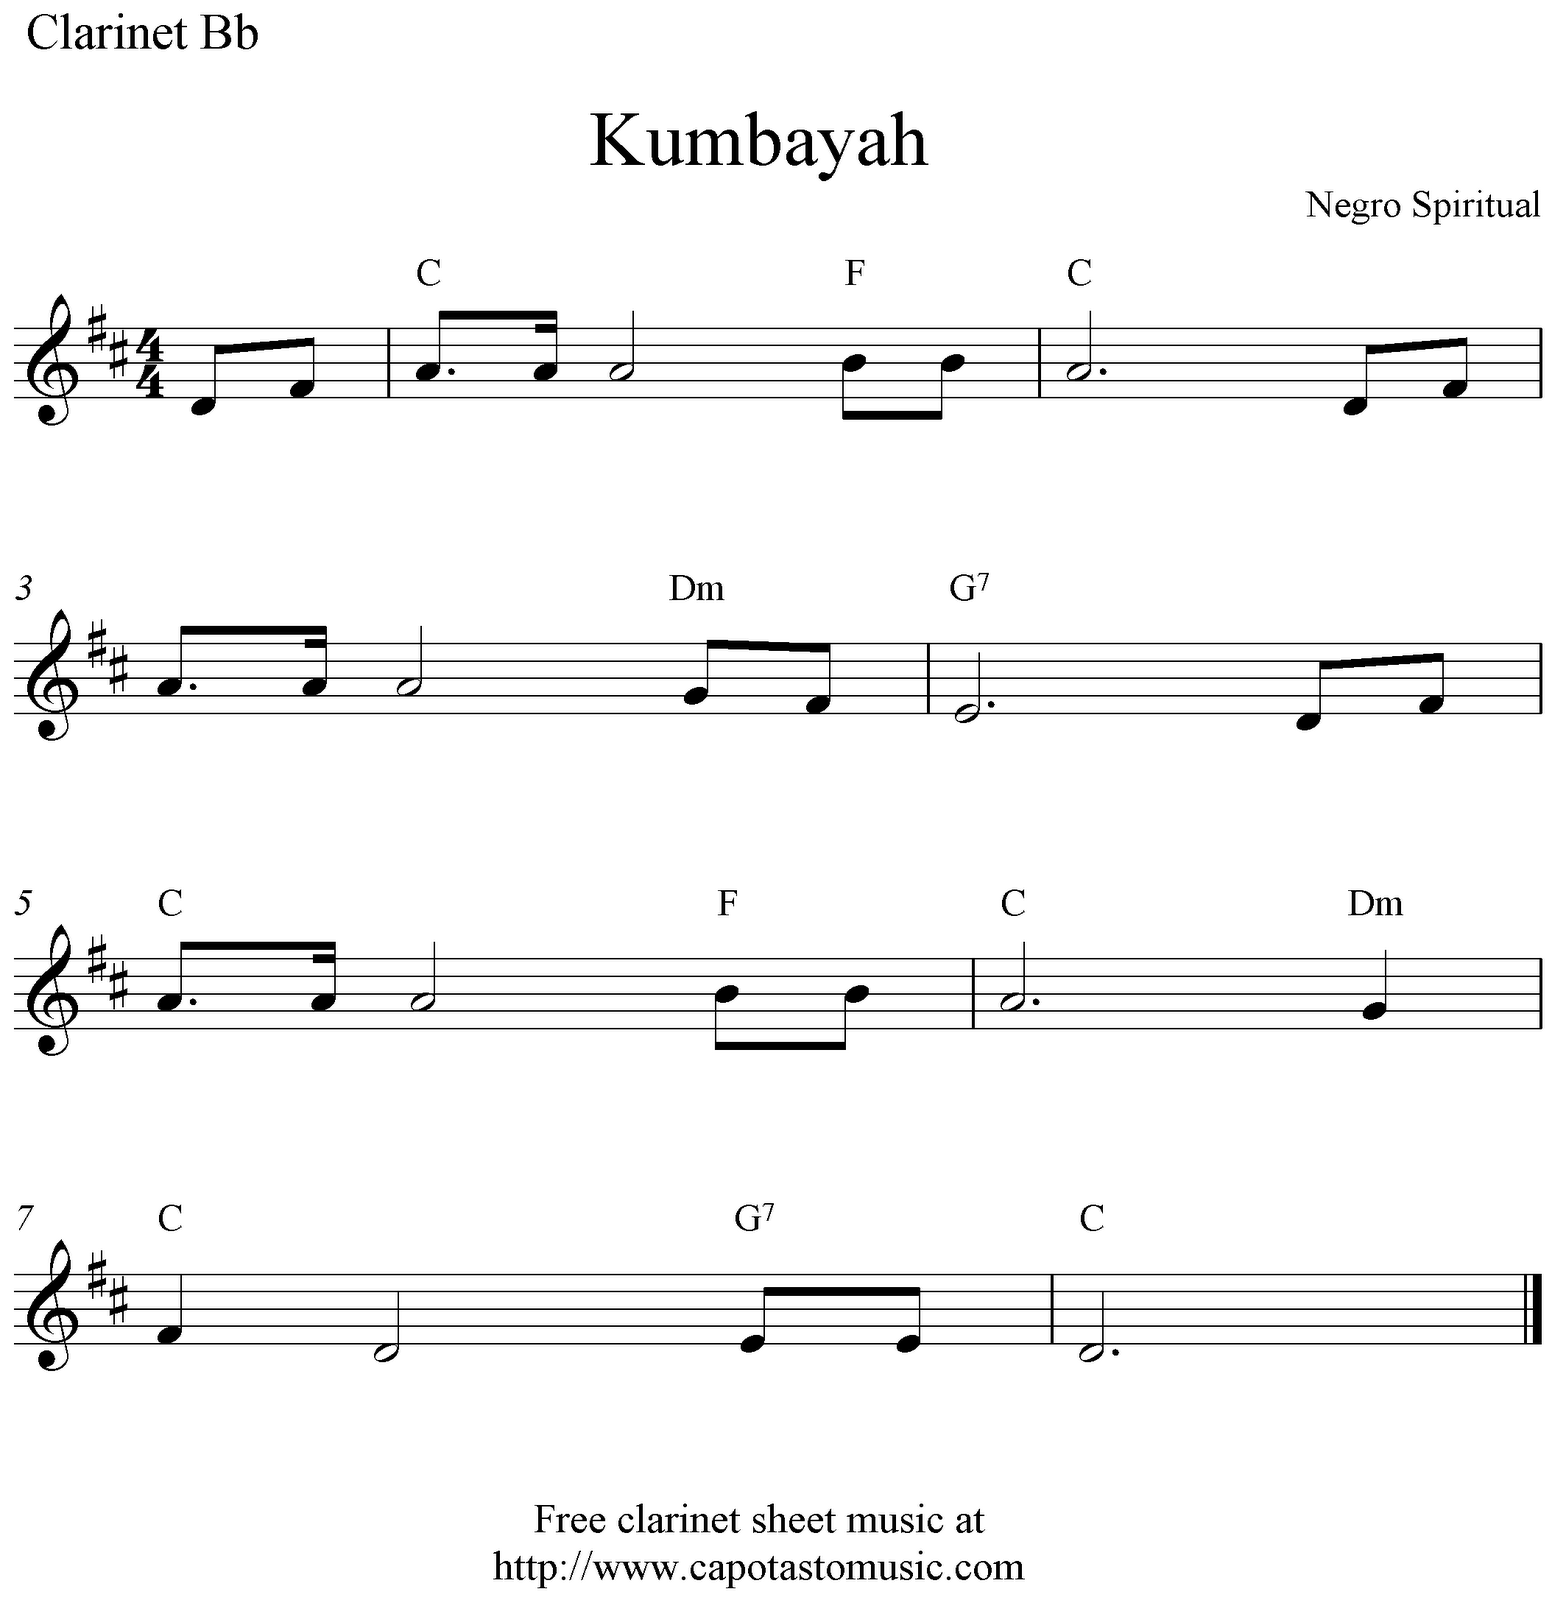 Free Easy Clarinet Sheet Music, Kumbayah